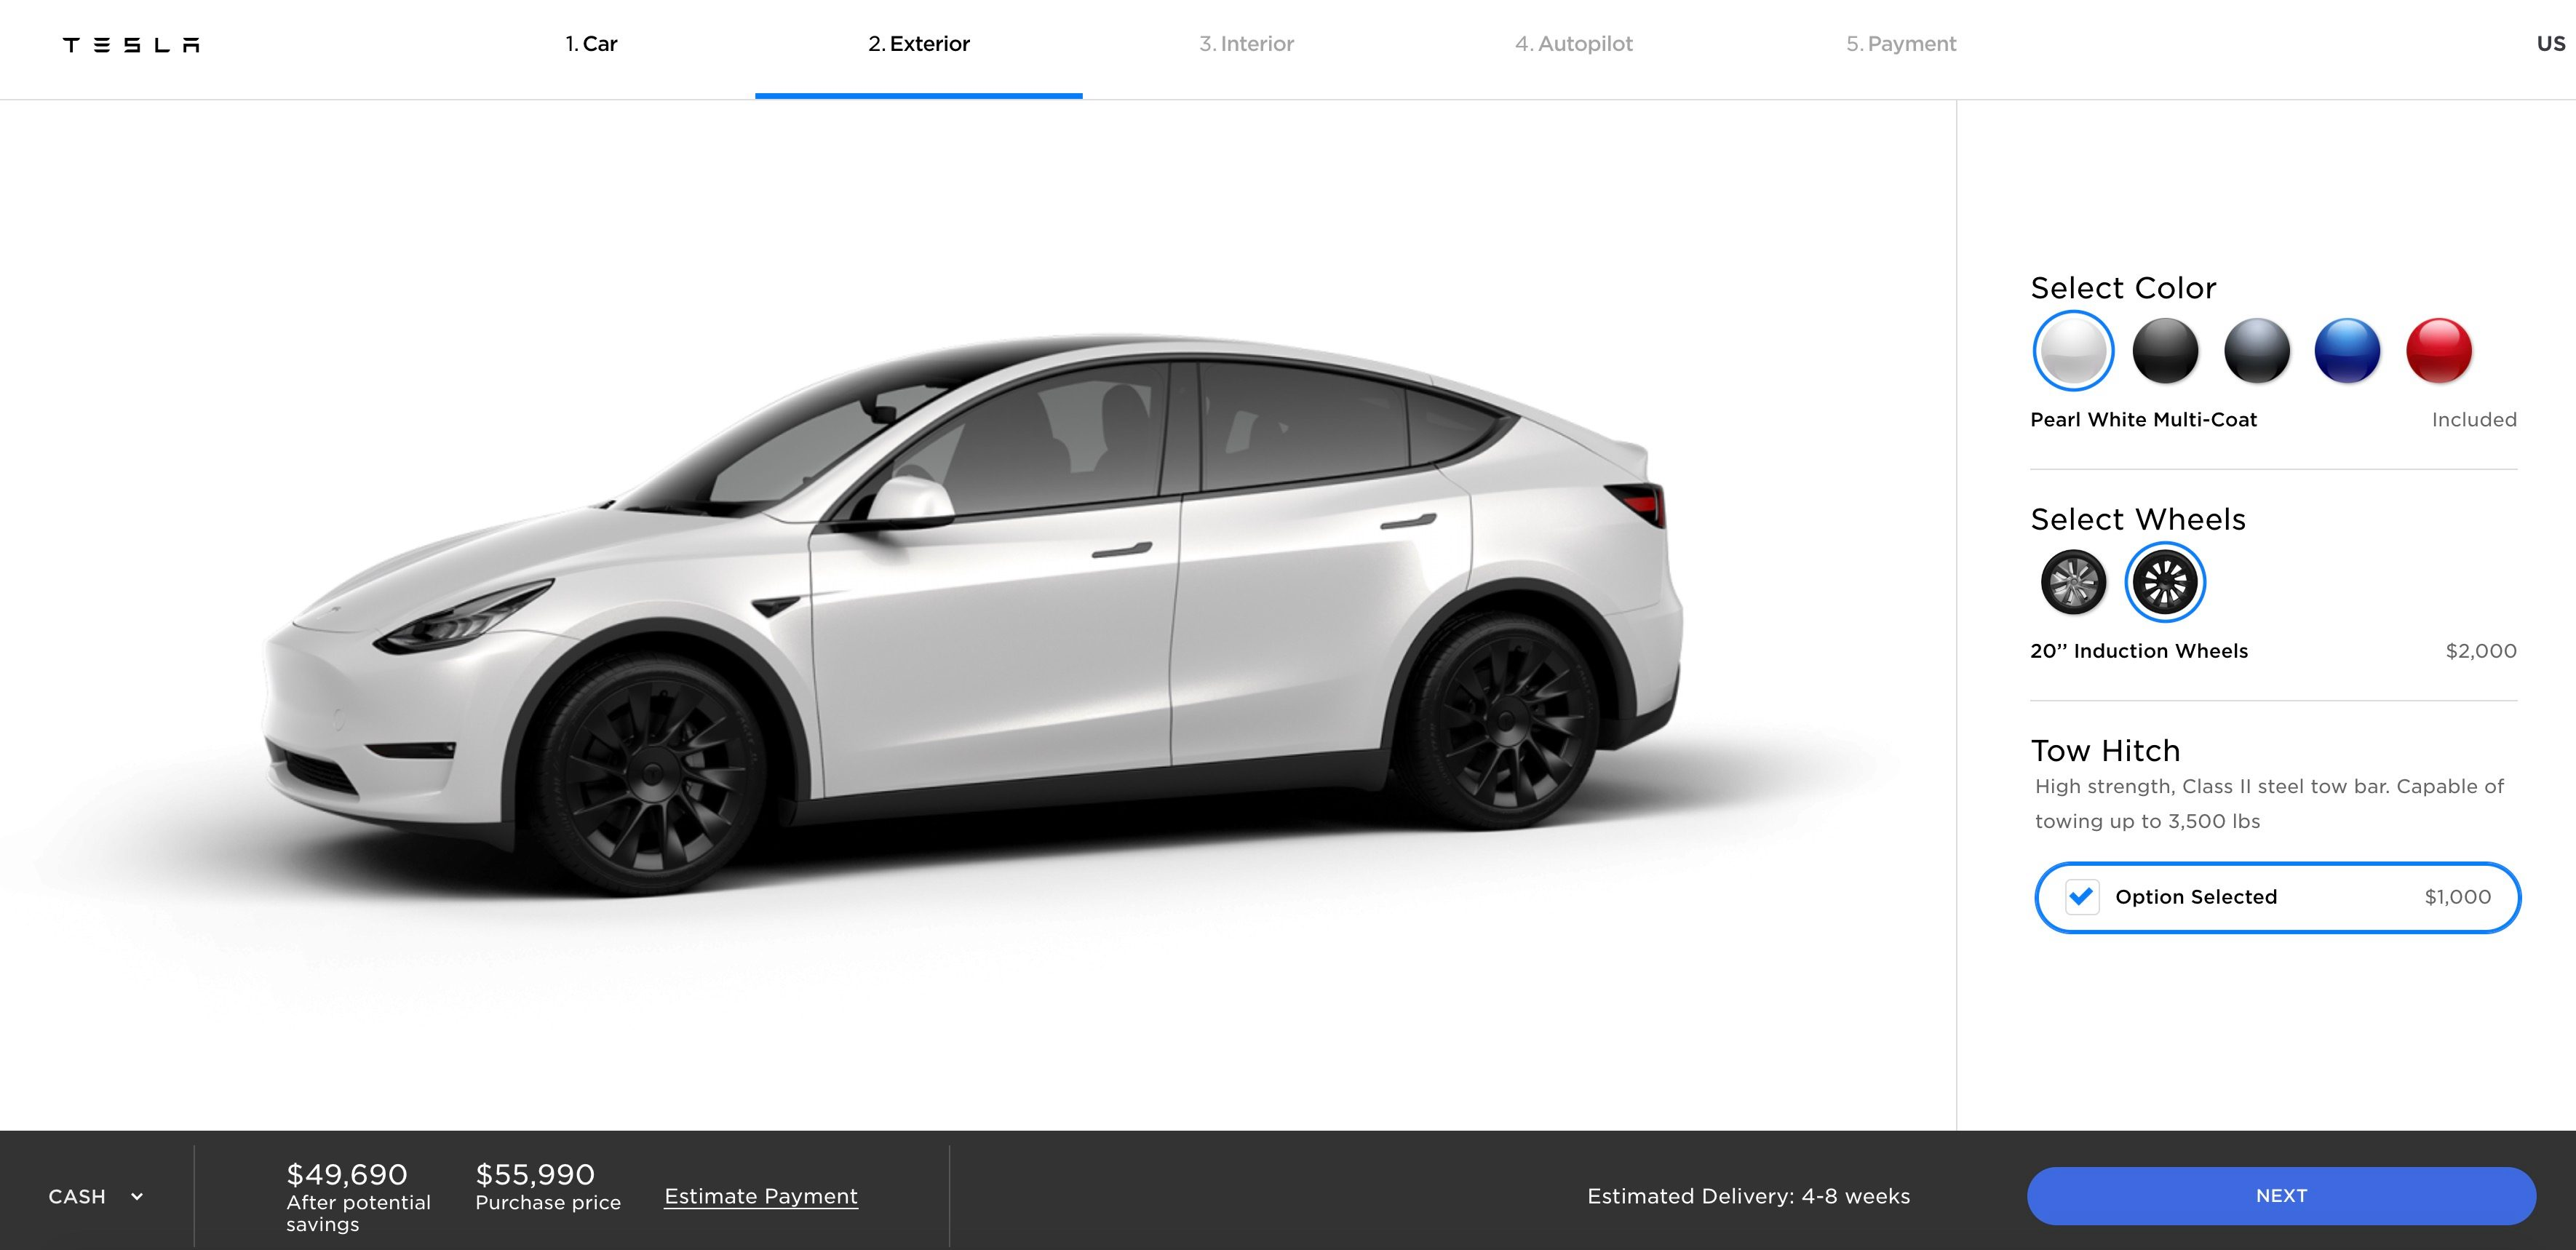 Tesla launches Model Y tow package, reveals strange detail about towing capacity